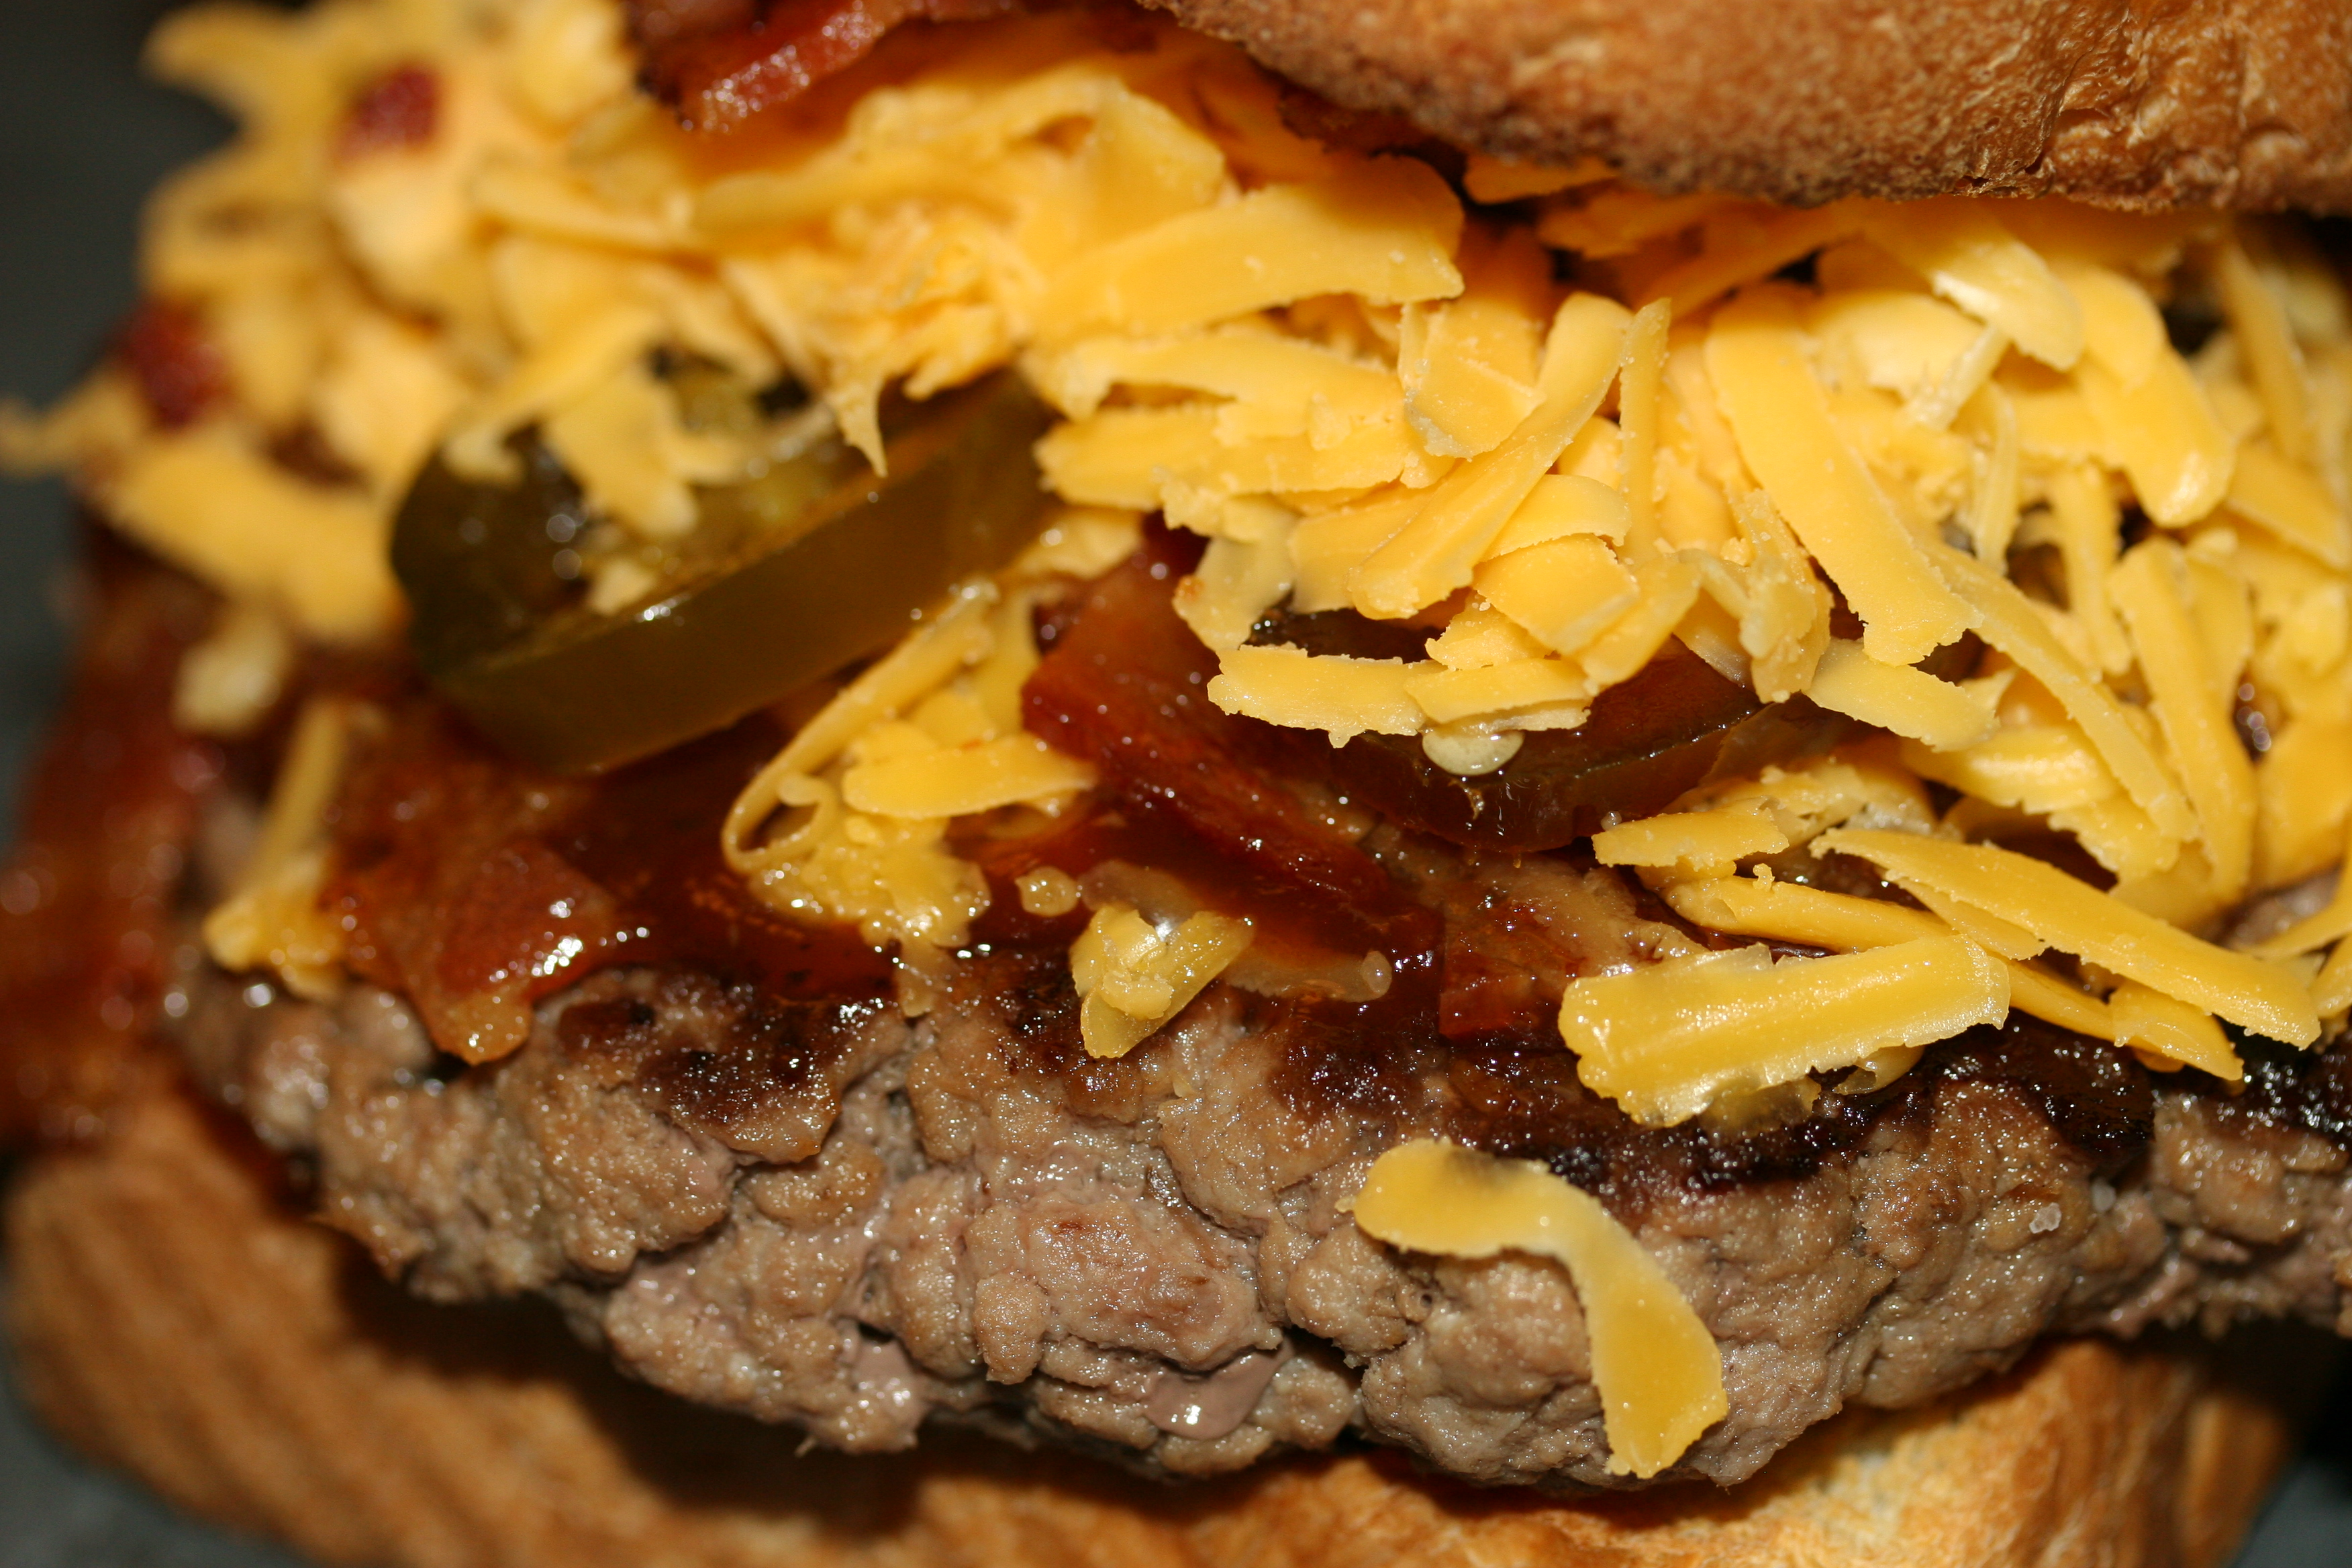 Discussion on this topic: The Best Texan Burger Recipe, the-best-texan-burger-recipe/